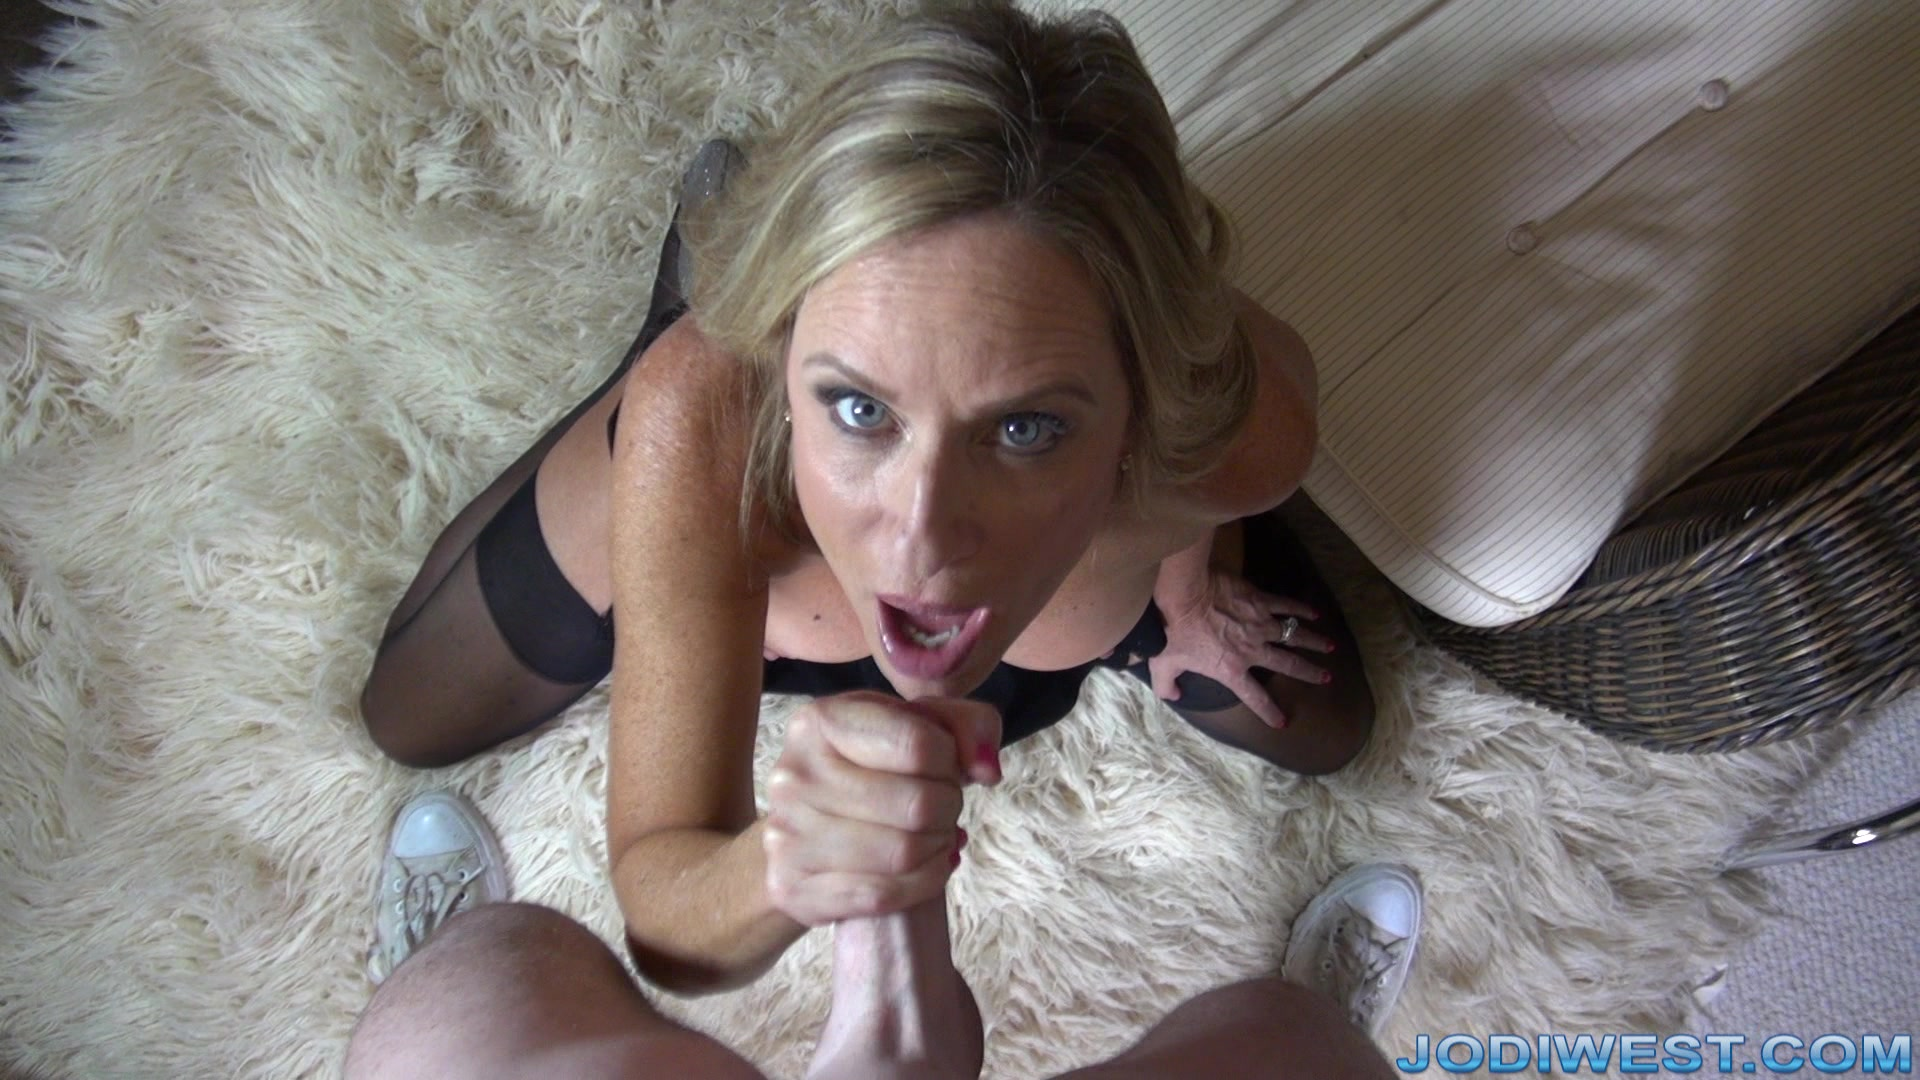 POV Blowjob from Jodi West image.